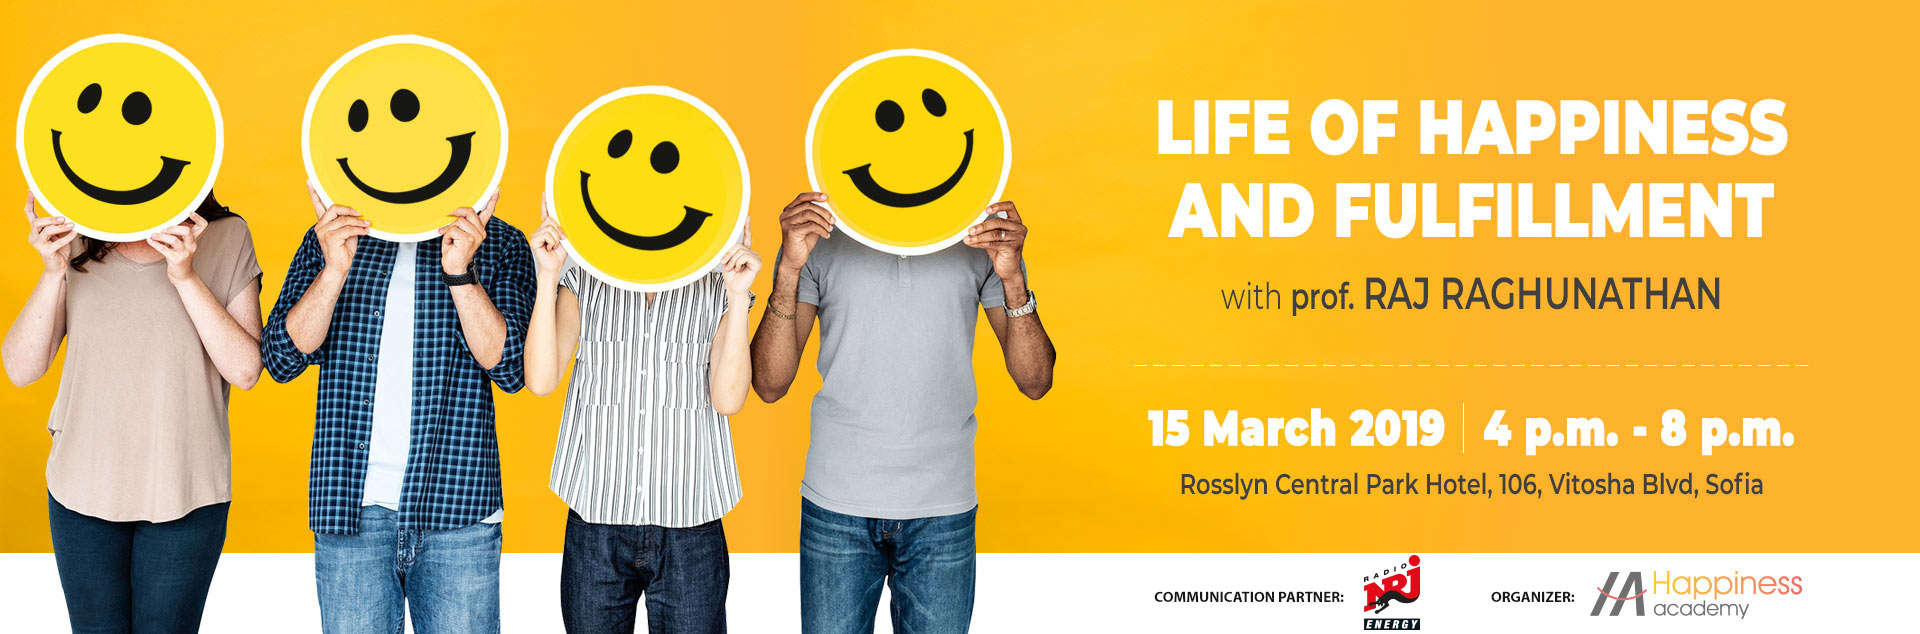 Life of happiness and fulfillment with prof. Raj Raghunathan, 15 March 2019, 4 p.m. - 8 p.m., Rosslyn Central Park Hotel, 106, Vitosha Blvd, Sofia